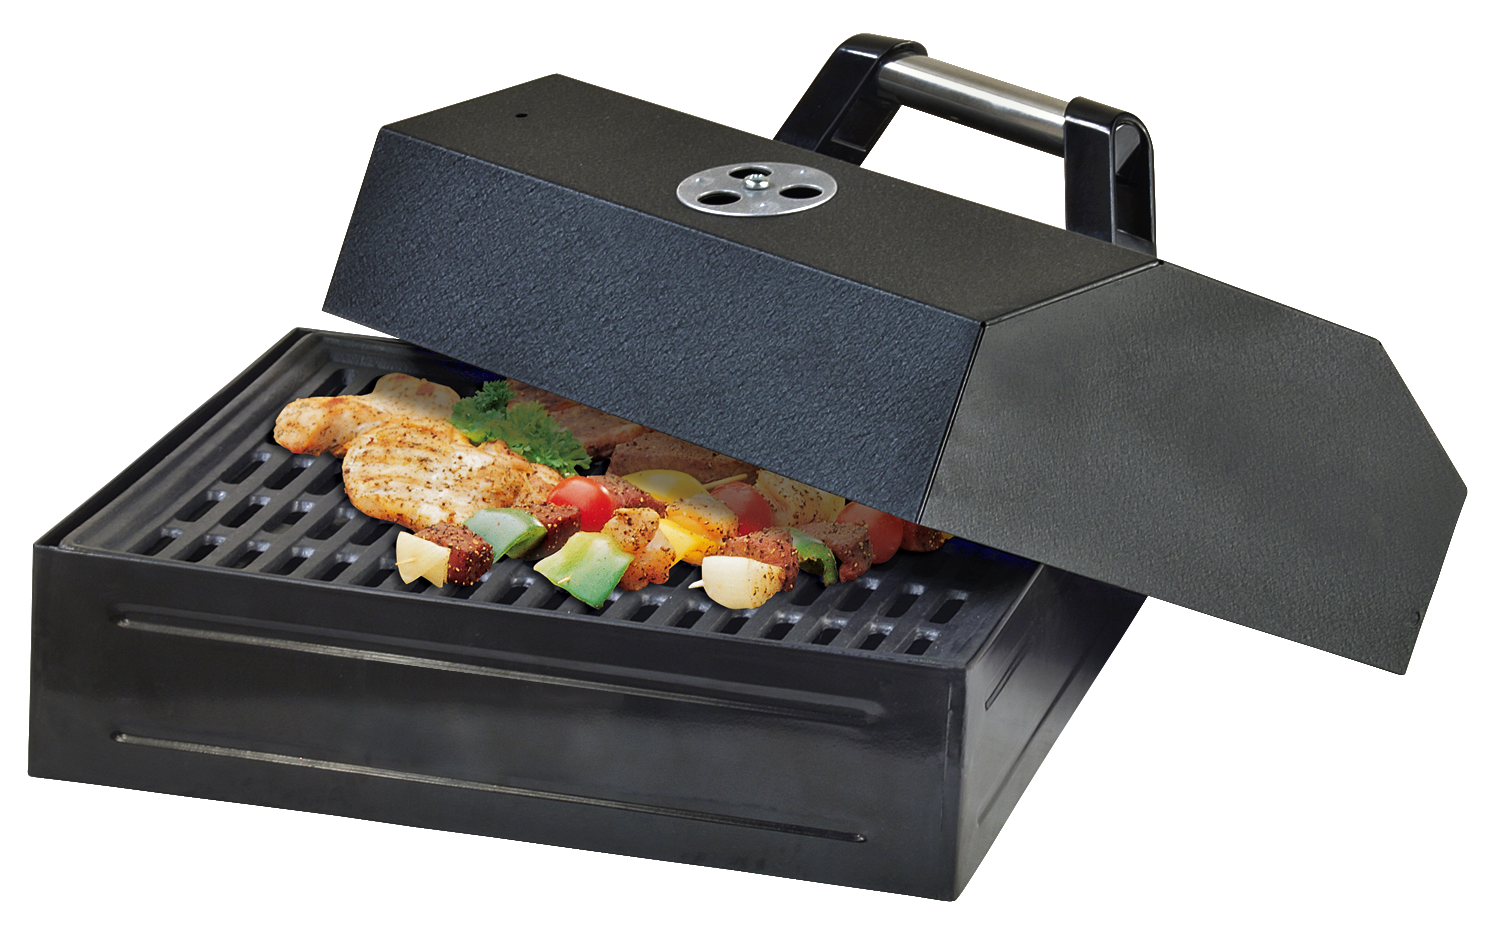 dac5aca0ac41 Camp Chef Barbecue Box with Lid